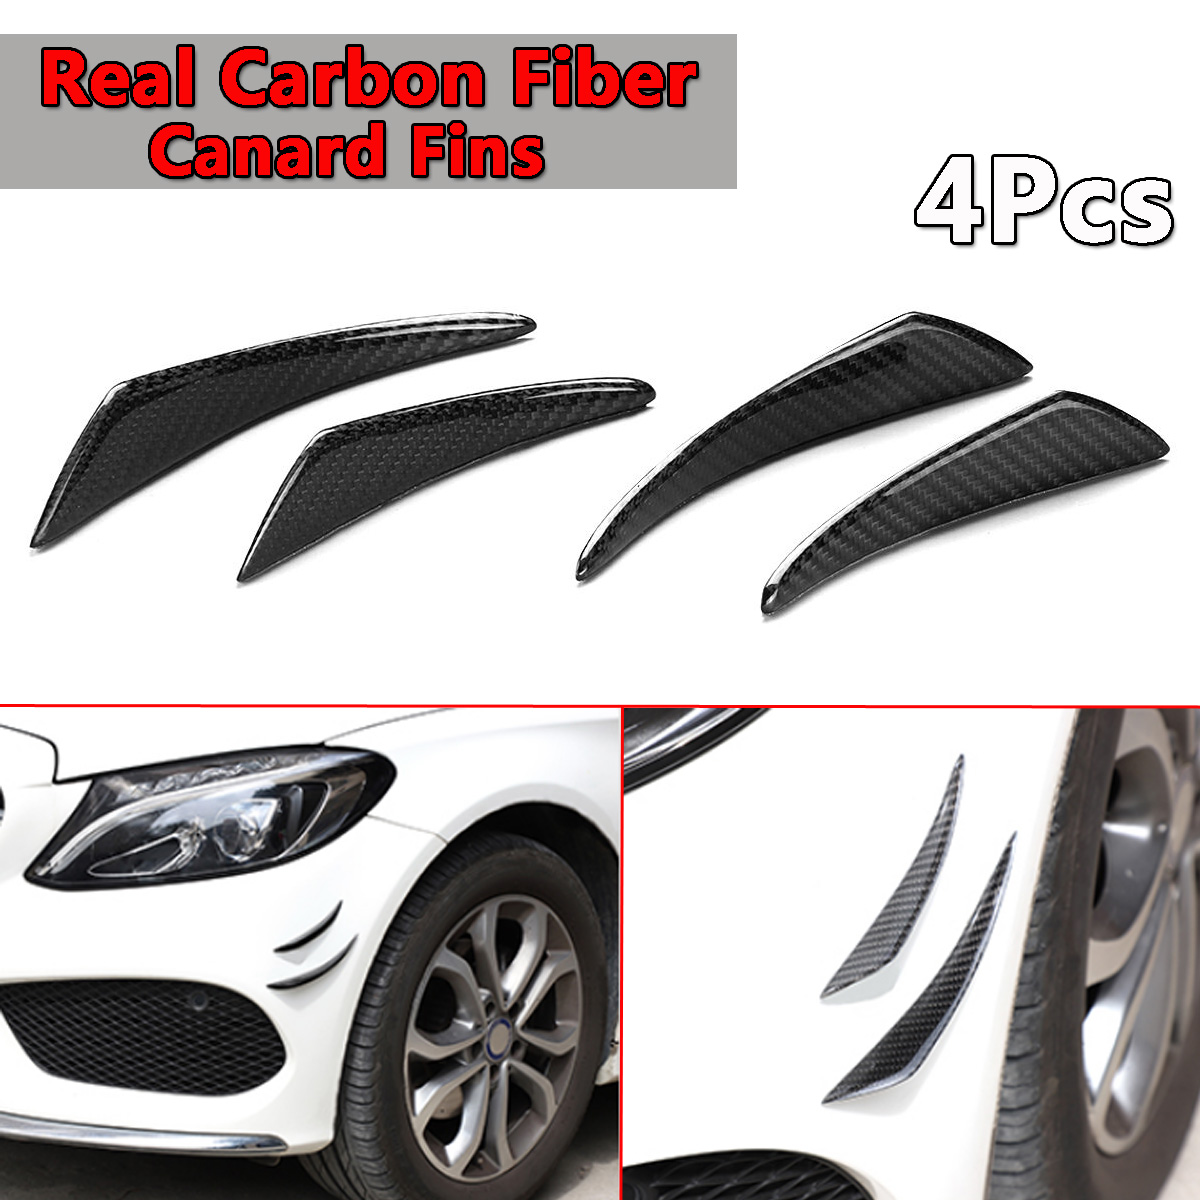 Real Carbon Fiber Side Fins Canards Car Stickers 4PCS for Mercedes-Benz/BMW/Audi/Lexus